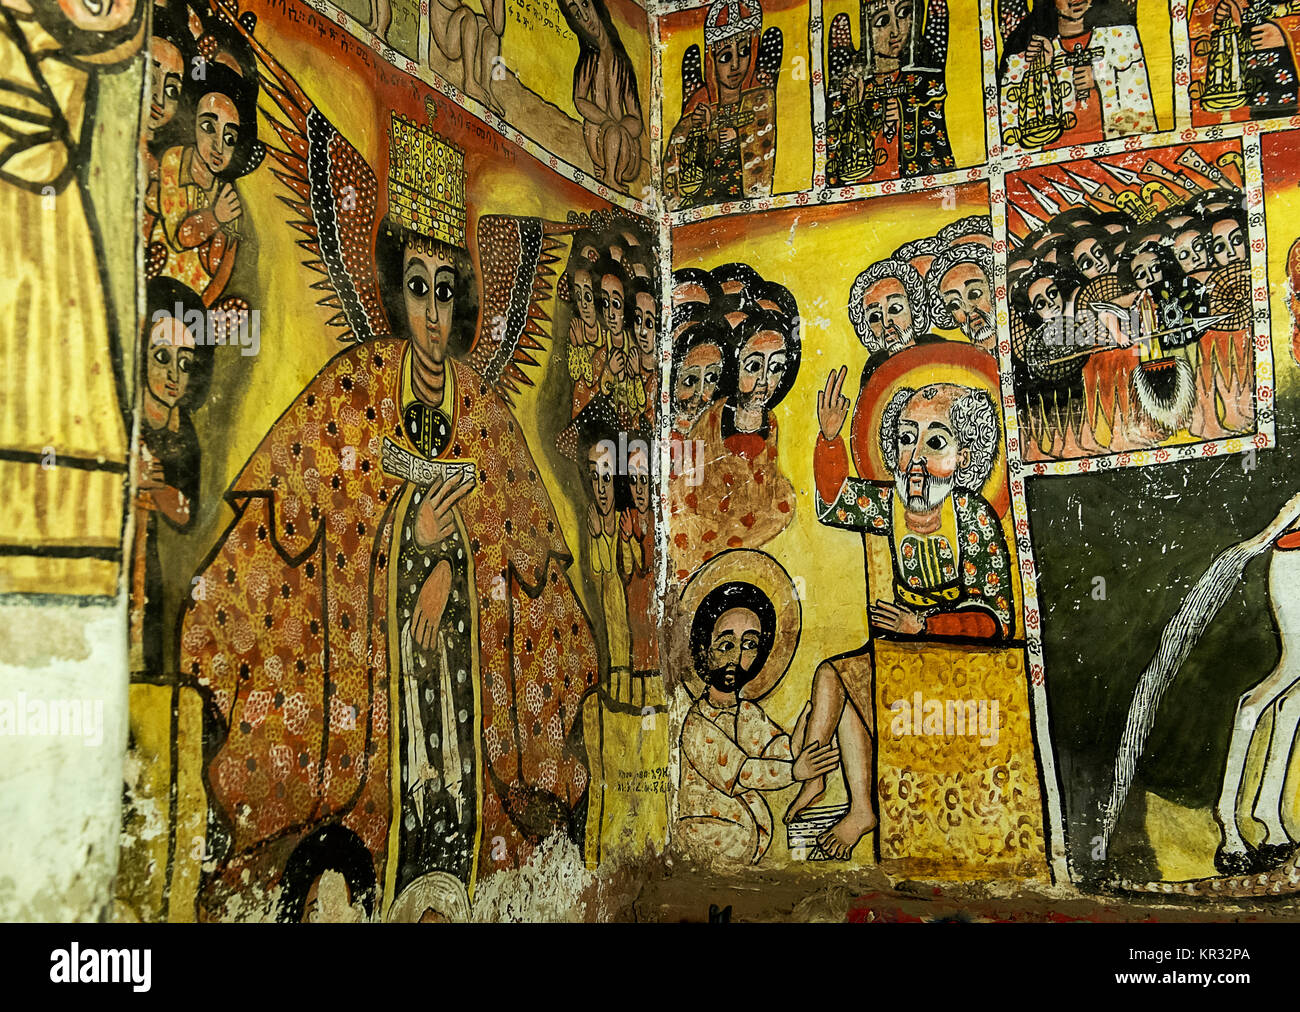 Left: Archangel Michael, right: Jesus washes the feet of Apostle Peter, fresco in the rock church Maryam Papaseyti, - Stock Image